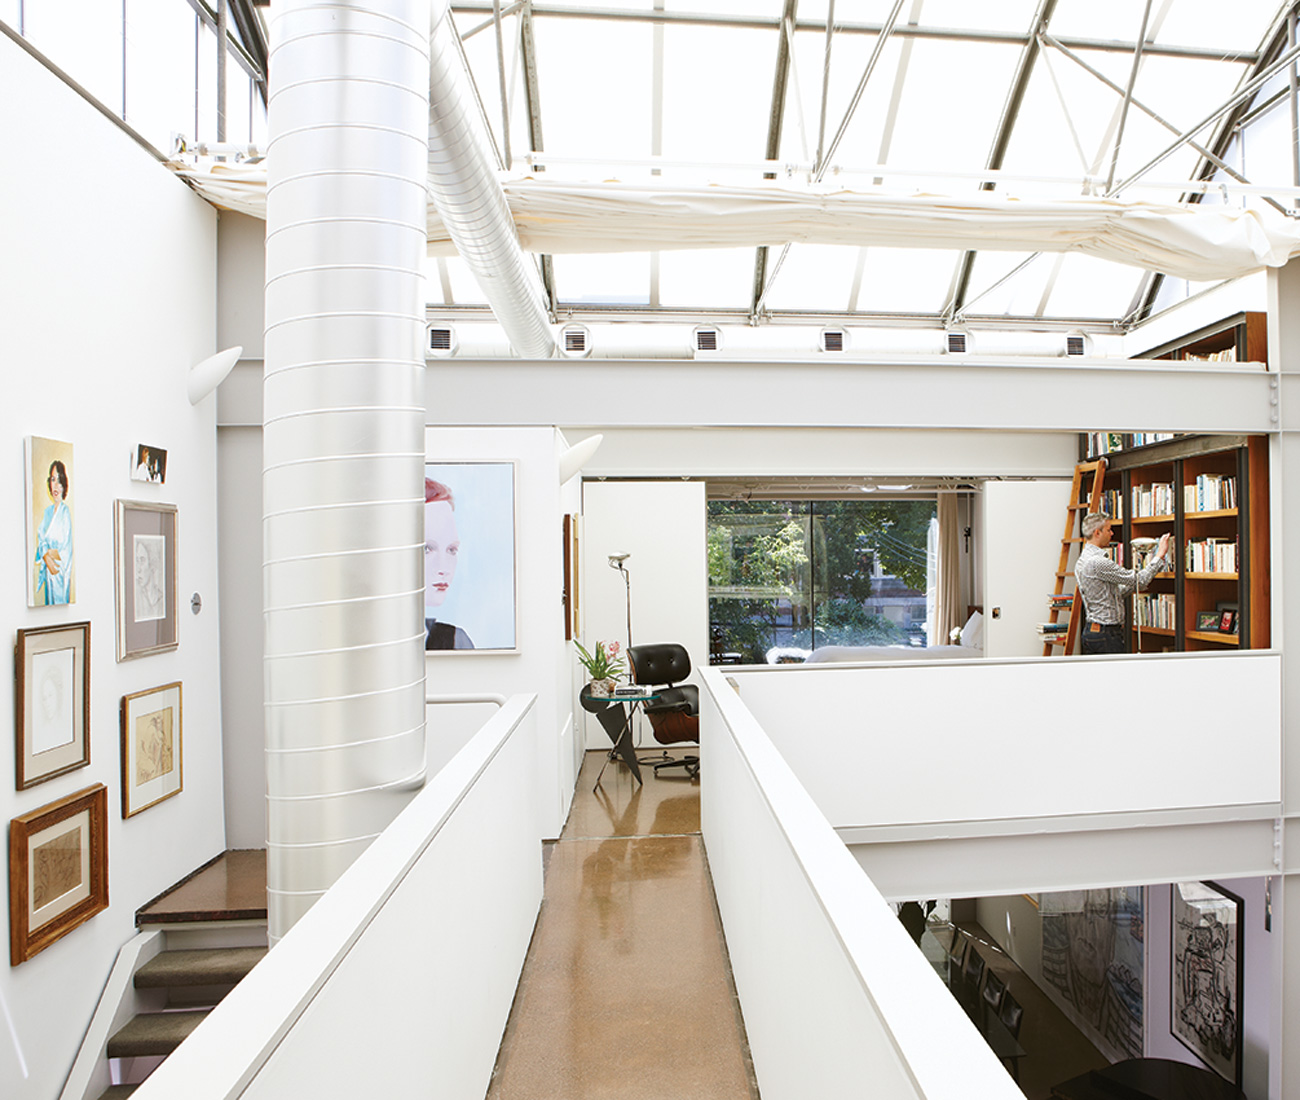 A catwalk upstairs joins both ends of the home. The I-beams were made locally by Algoma and the company's logo can be read in relief throughout the space.